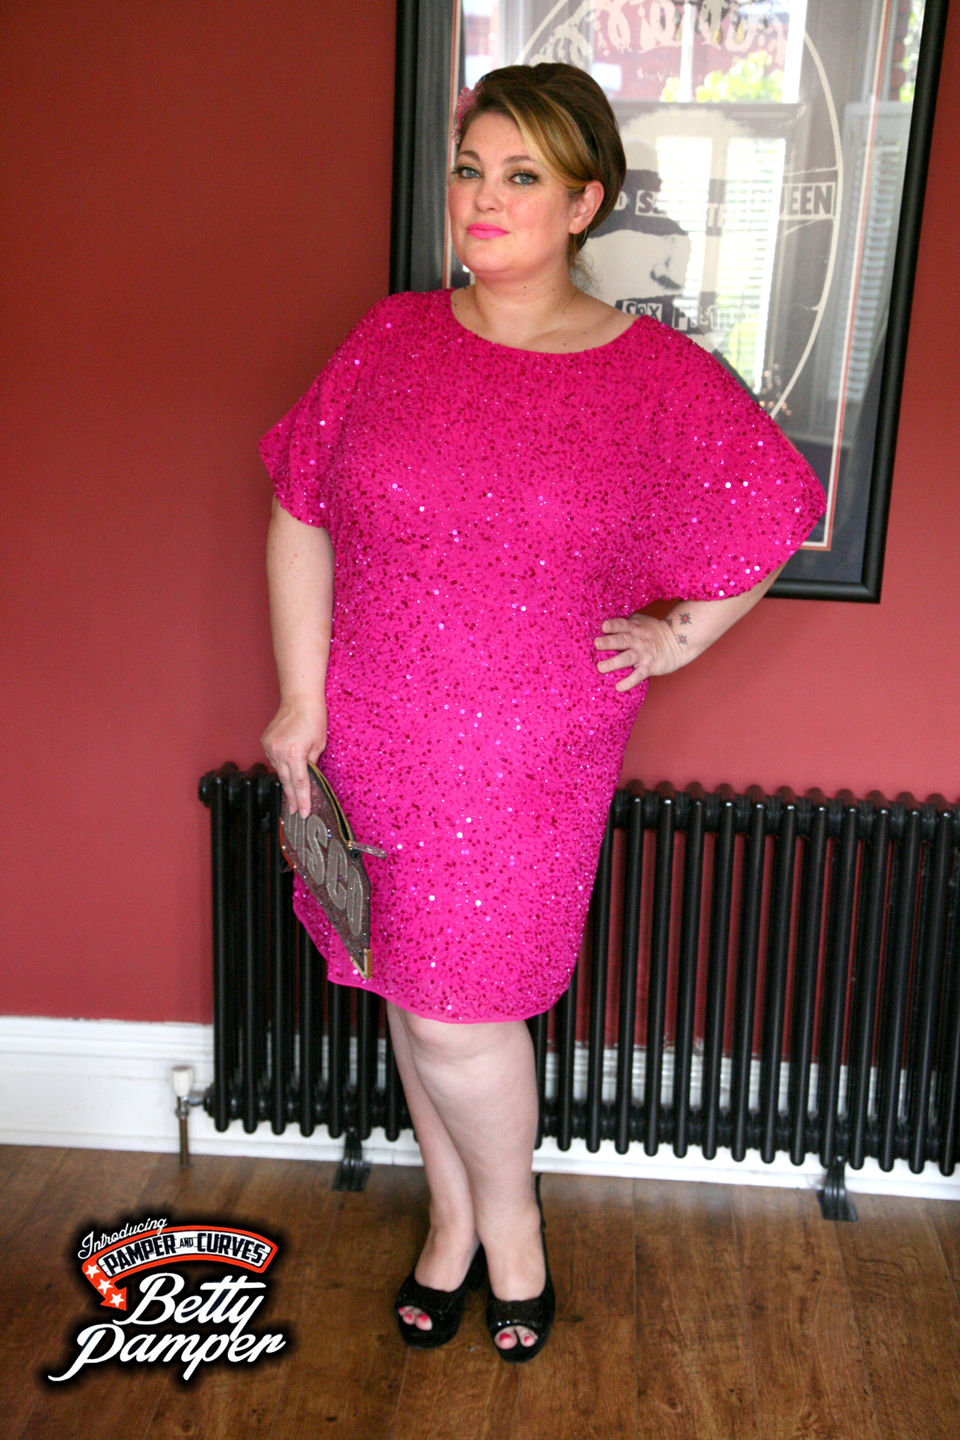 Plus Size Evening Wear Featuring Yours Clothing Pamper And Curves